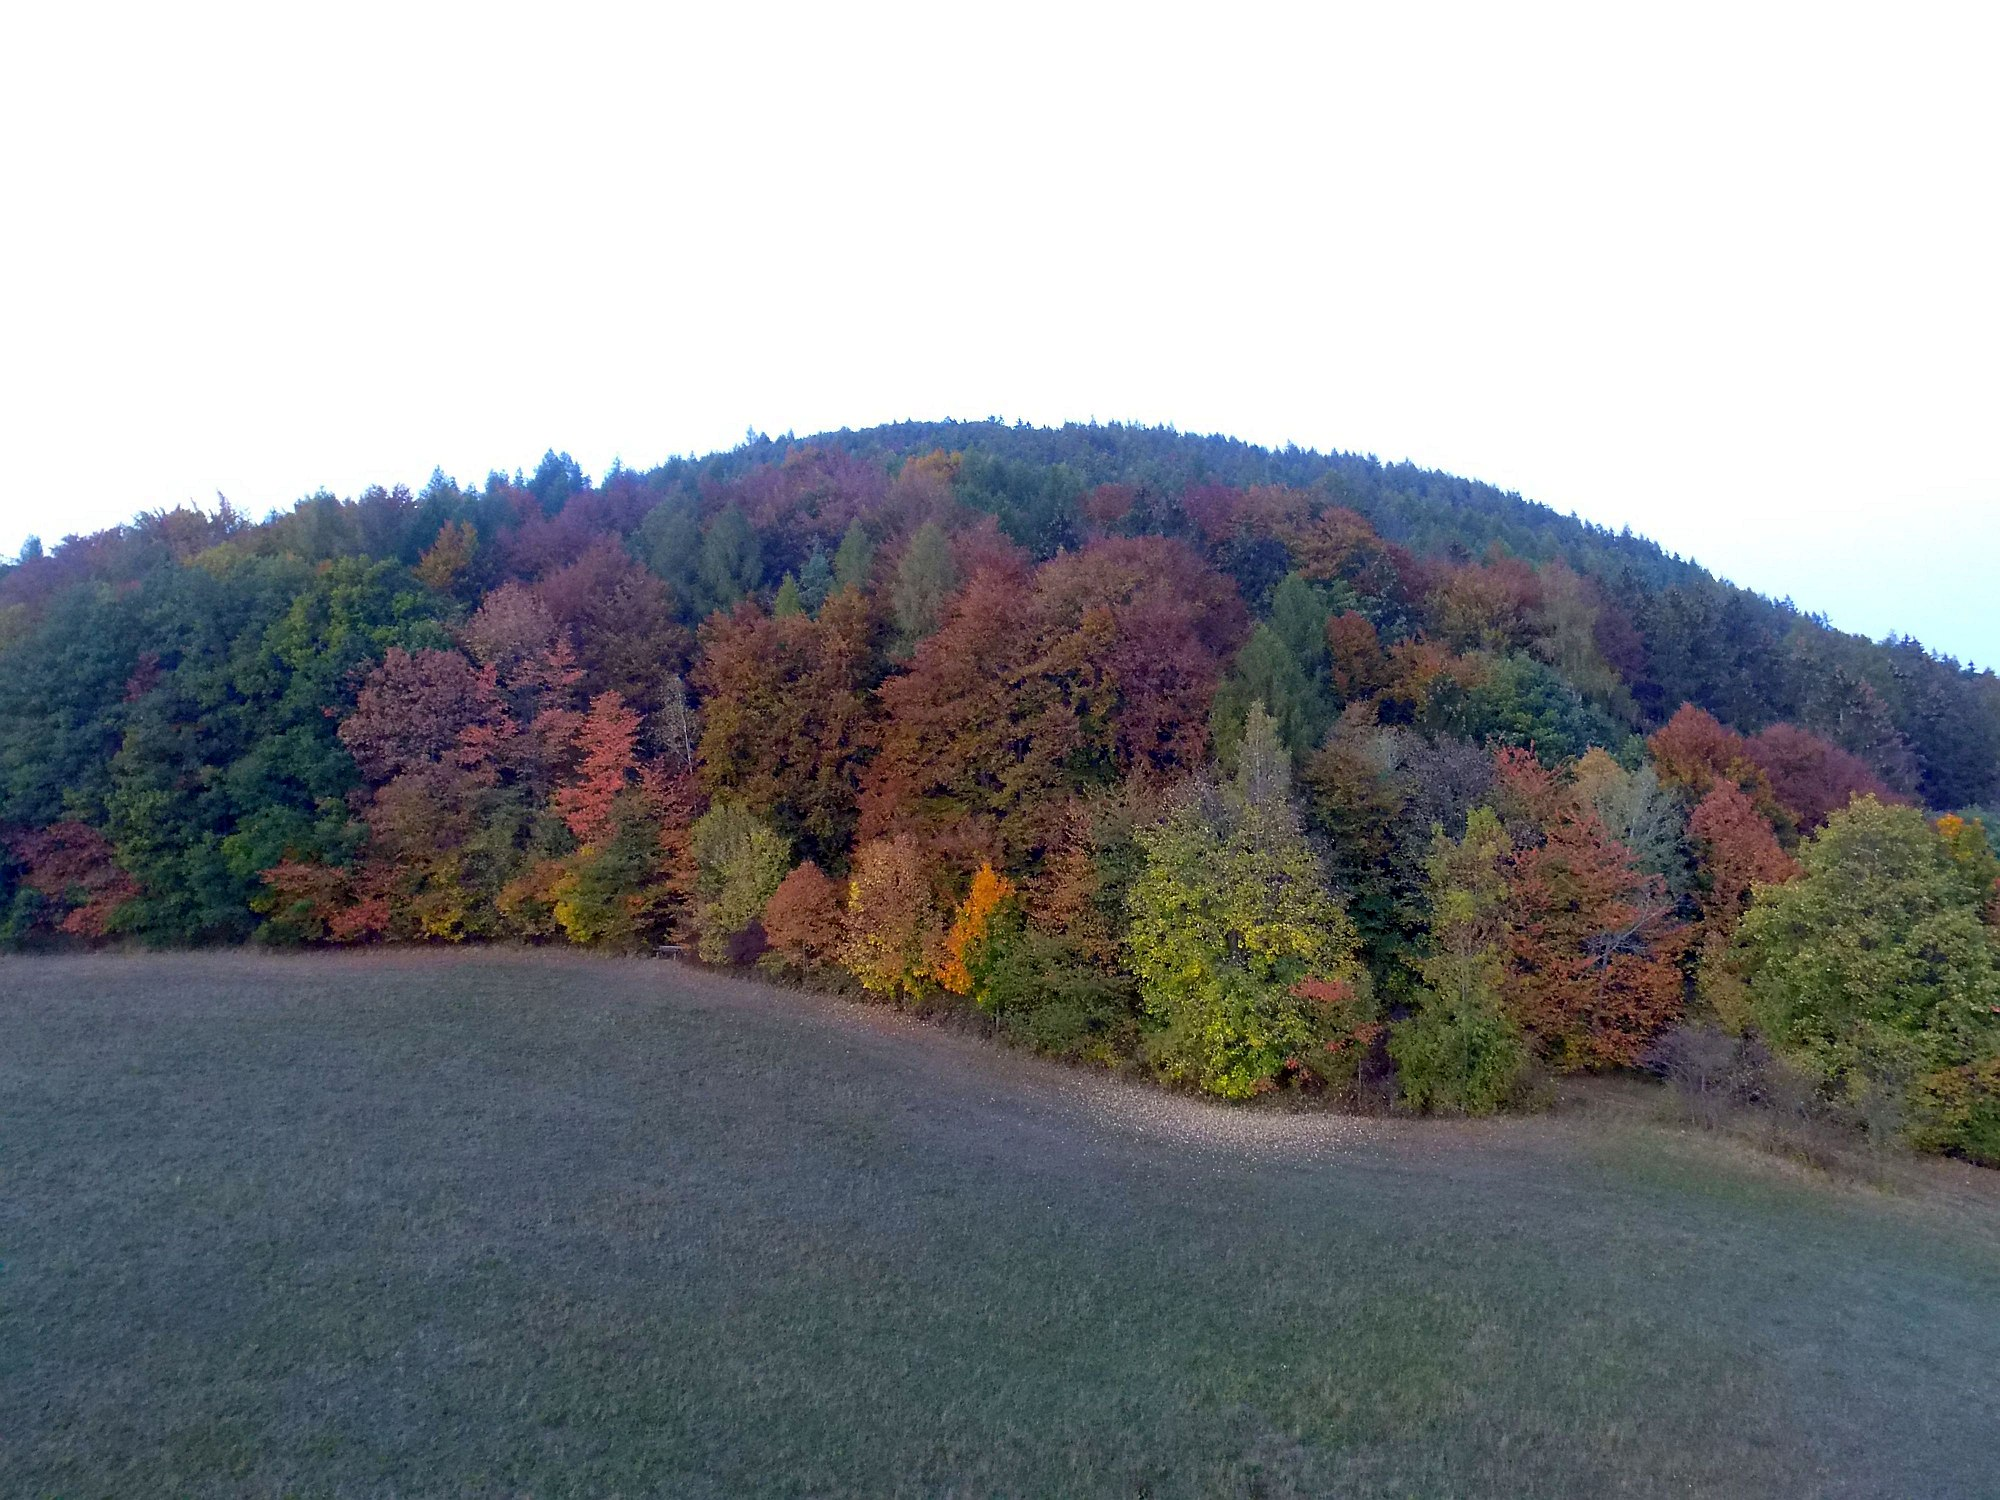 Colors of autumn near the forest